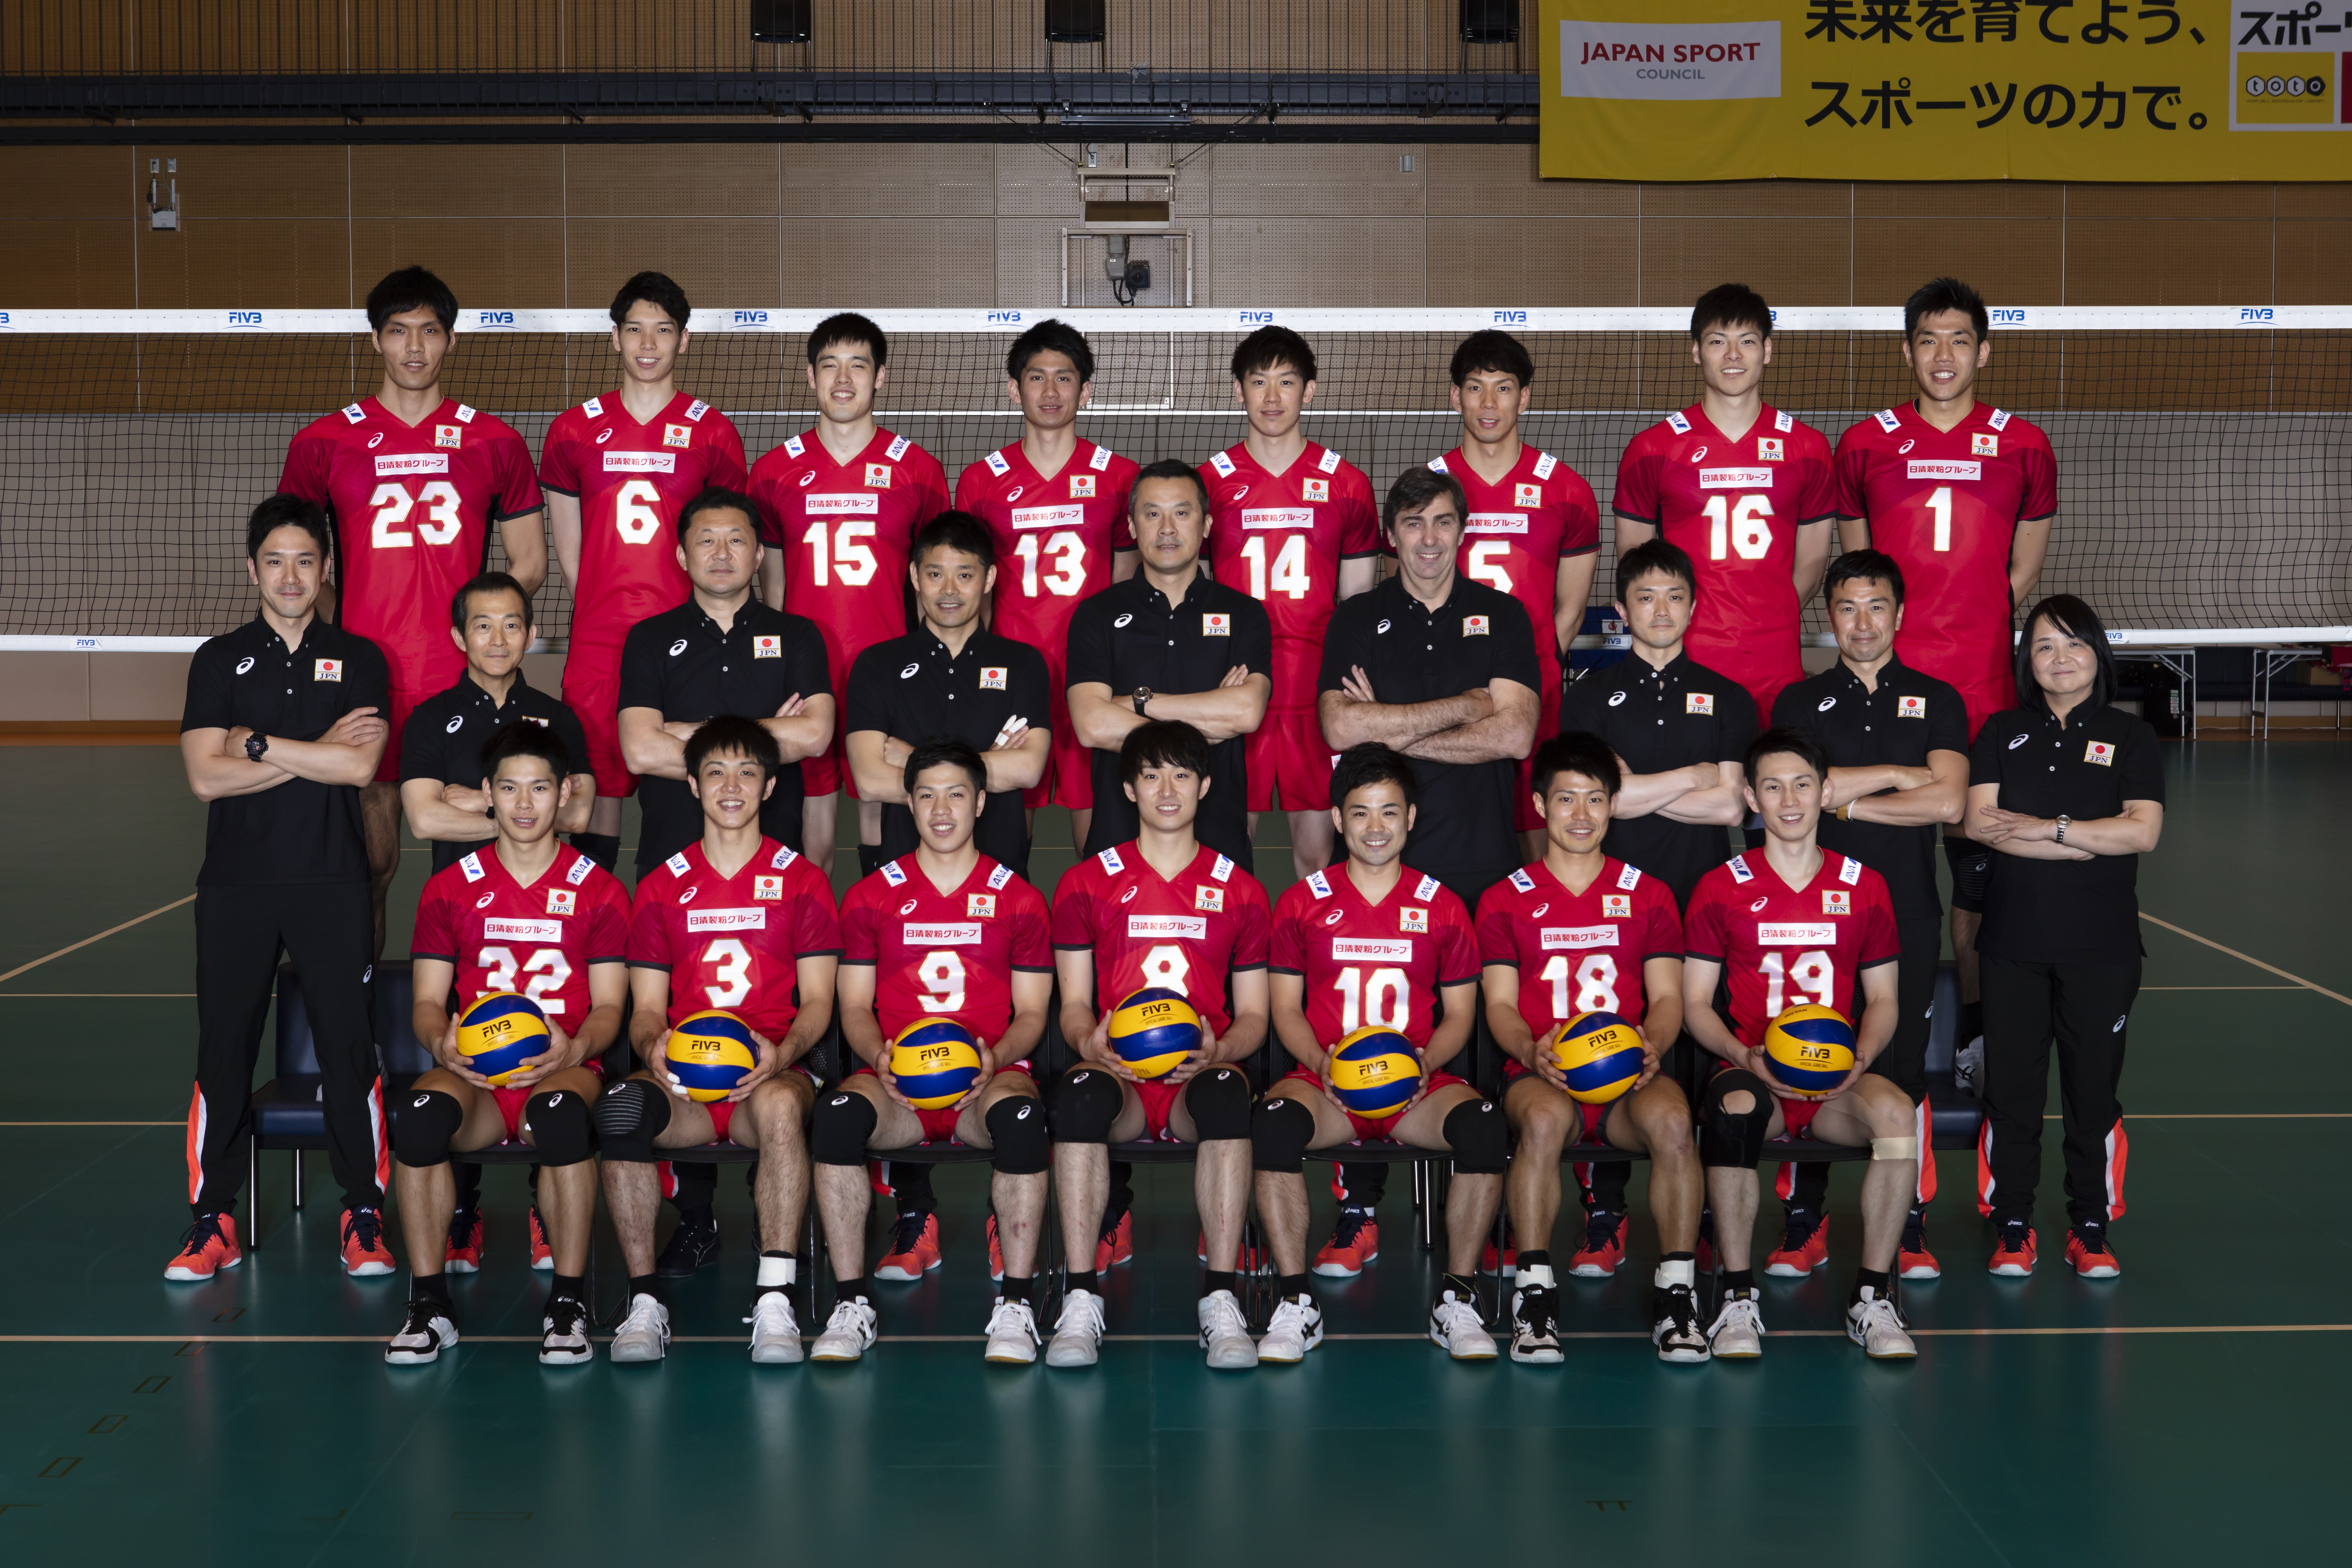 Fivb Volleyball Nations League 2018 Men S Teams Overview Japan